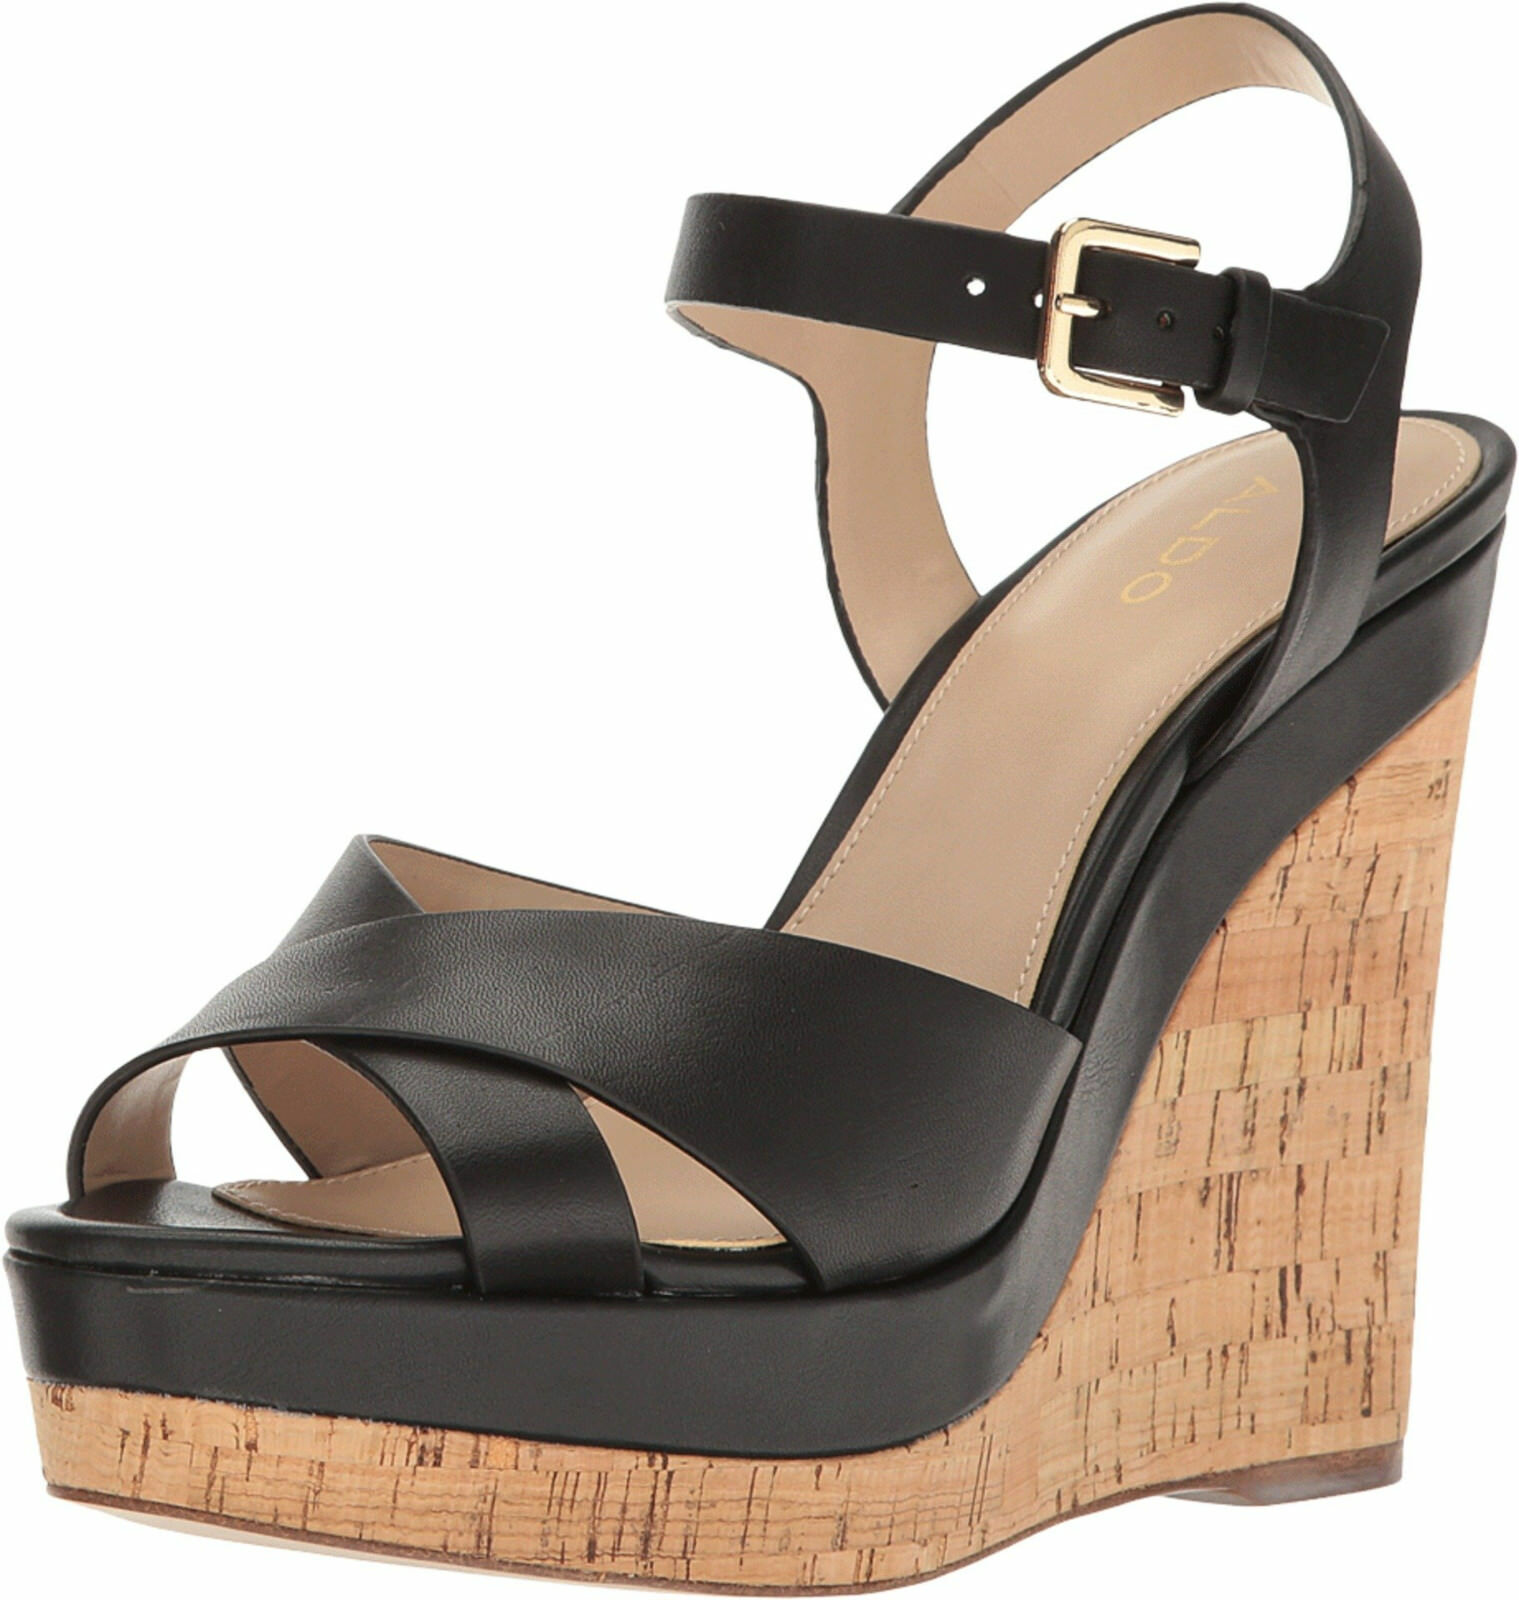 ALDO SIZE 7 40 MADYSON BLACK REAL LEATHER HIGH HEEL WEDGE Schuhe SANDALS BNWB